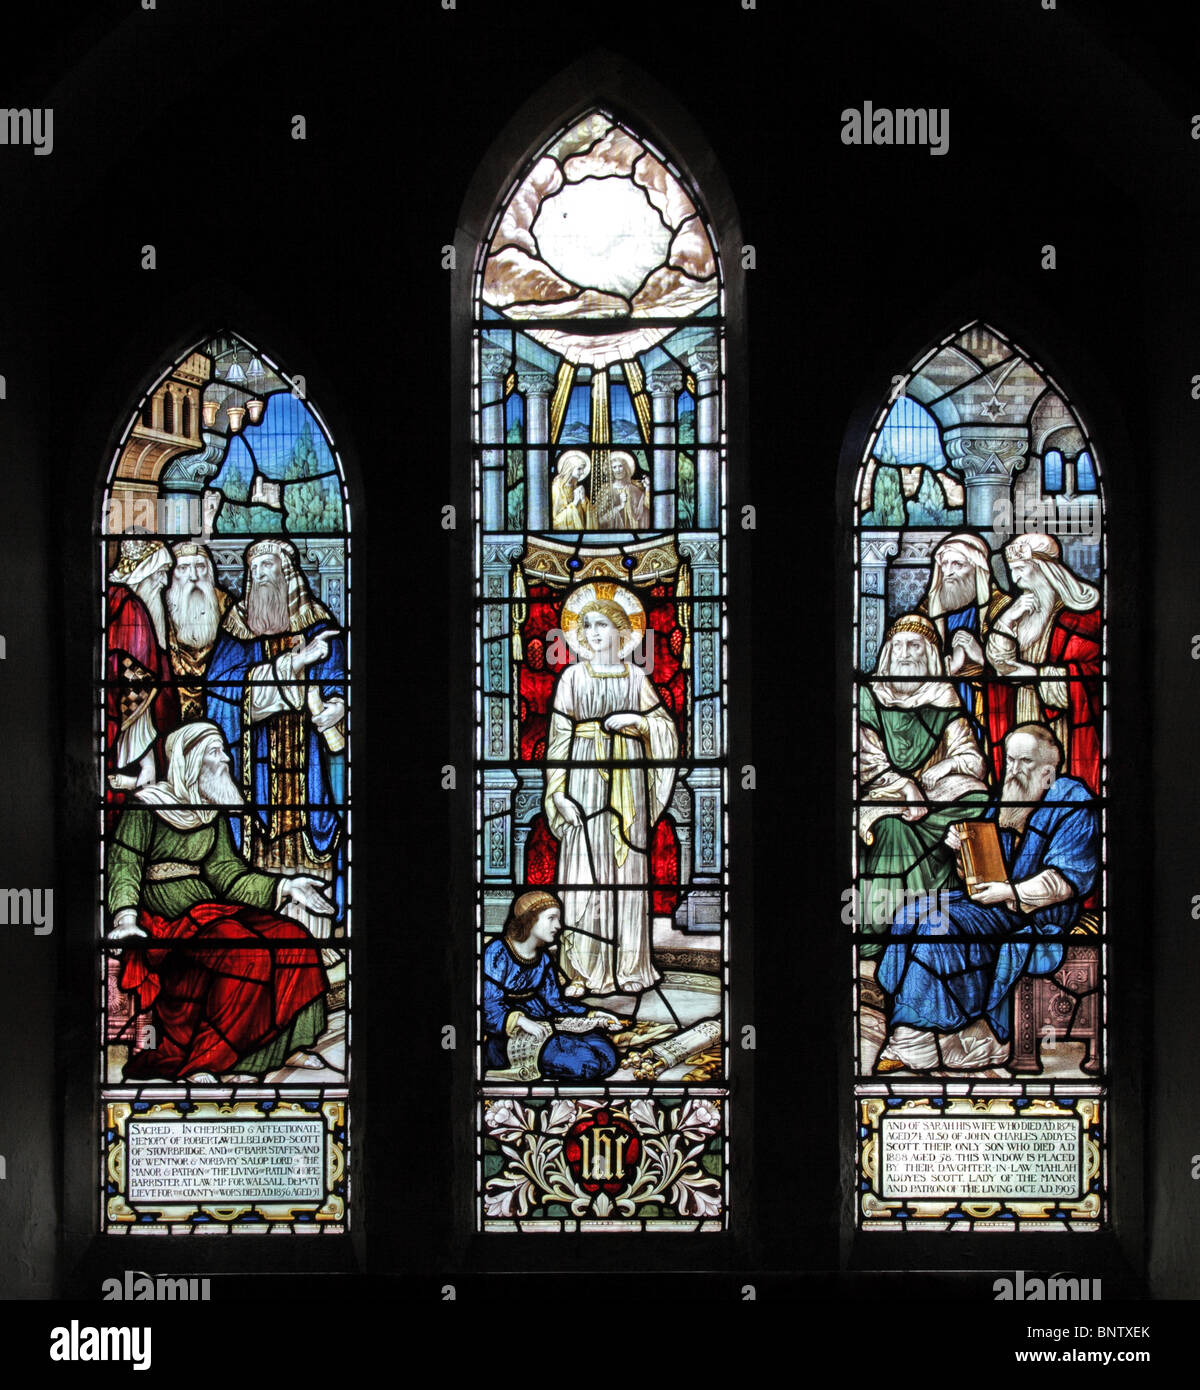 A Stained Glass Window depicting Jesus in the Temple as a twelve year old boy, St Margaret's Church, Ratlinghope, - Stock Image